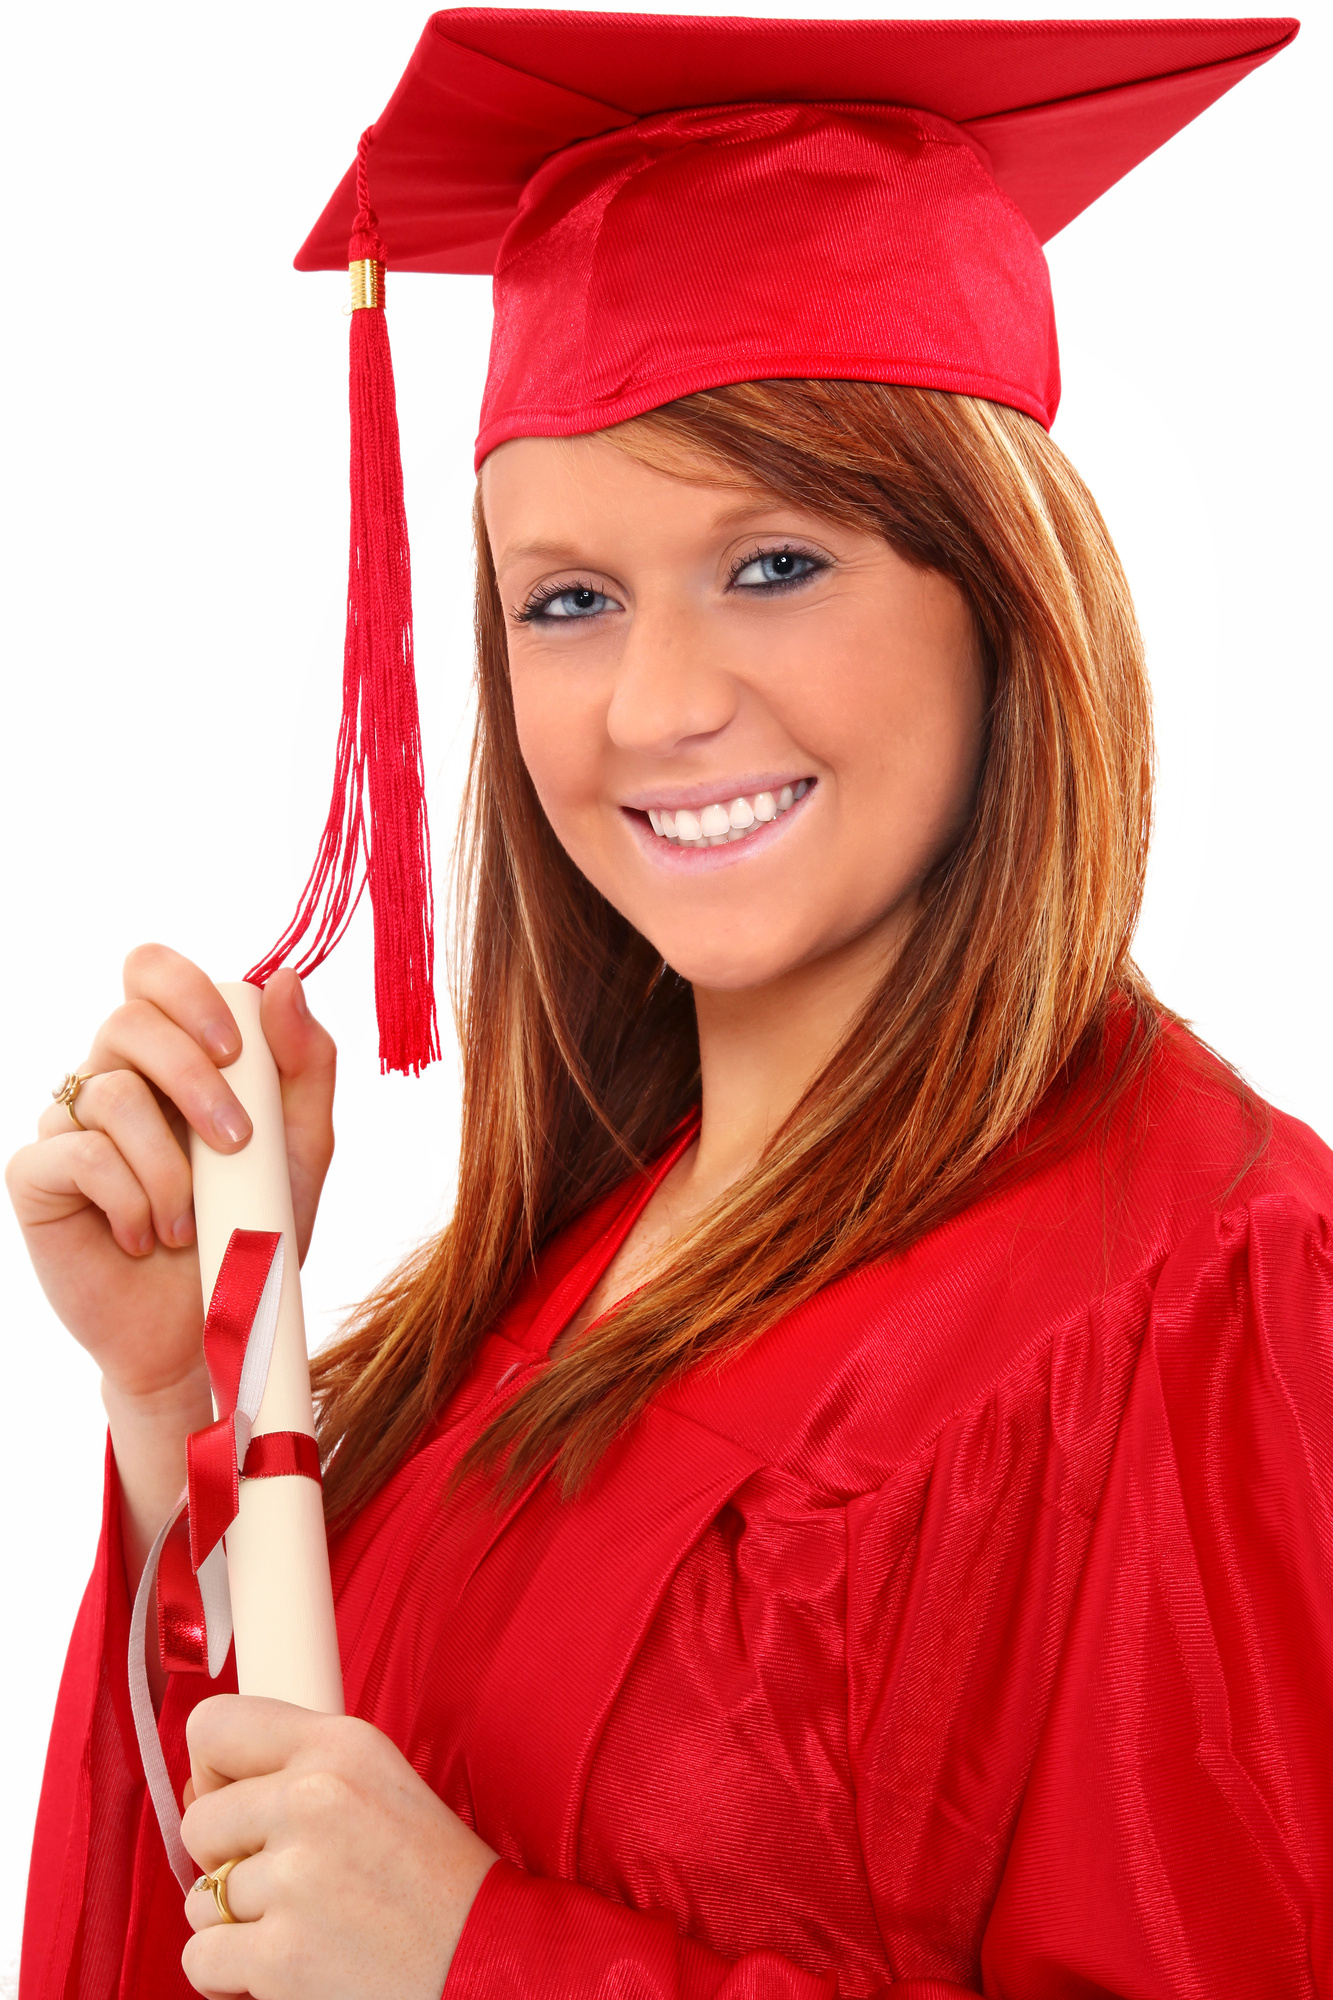 General Education Diploma: How Long Does It Take to Get a GED?